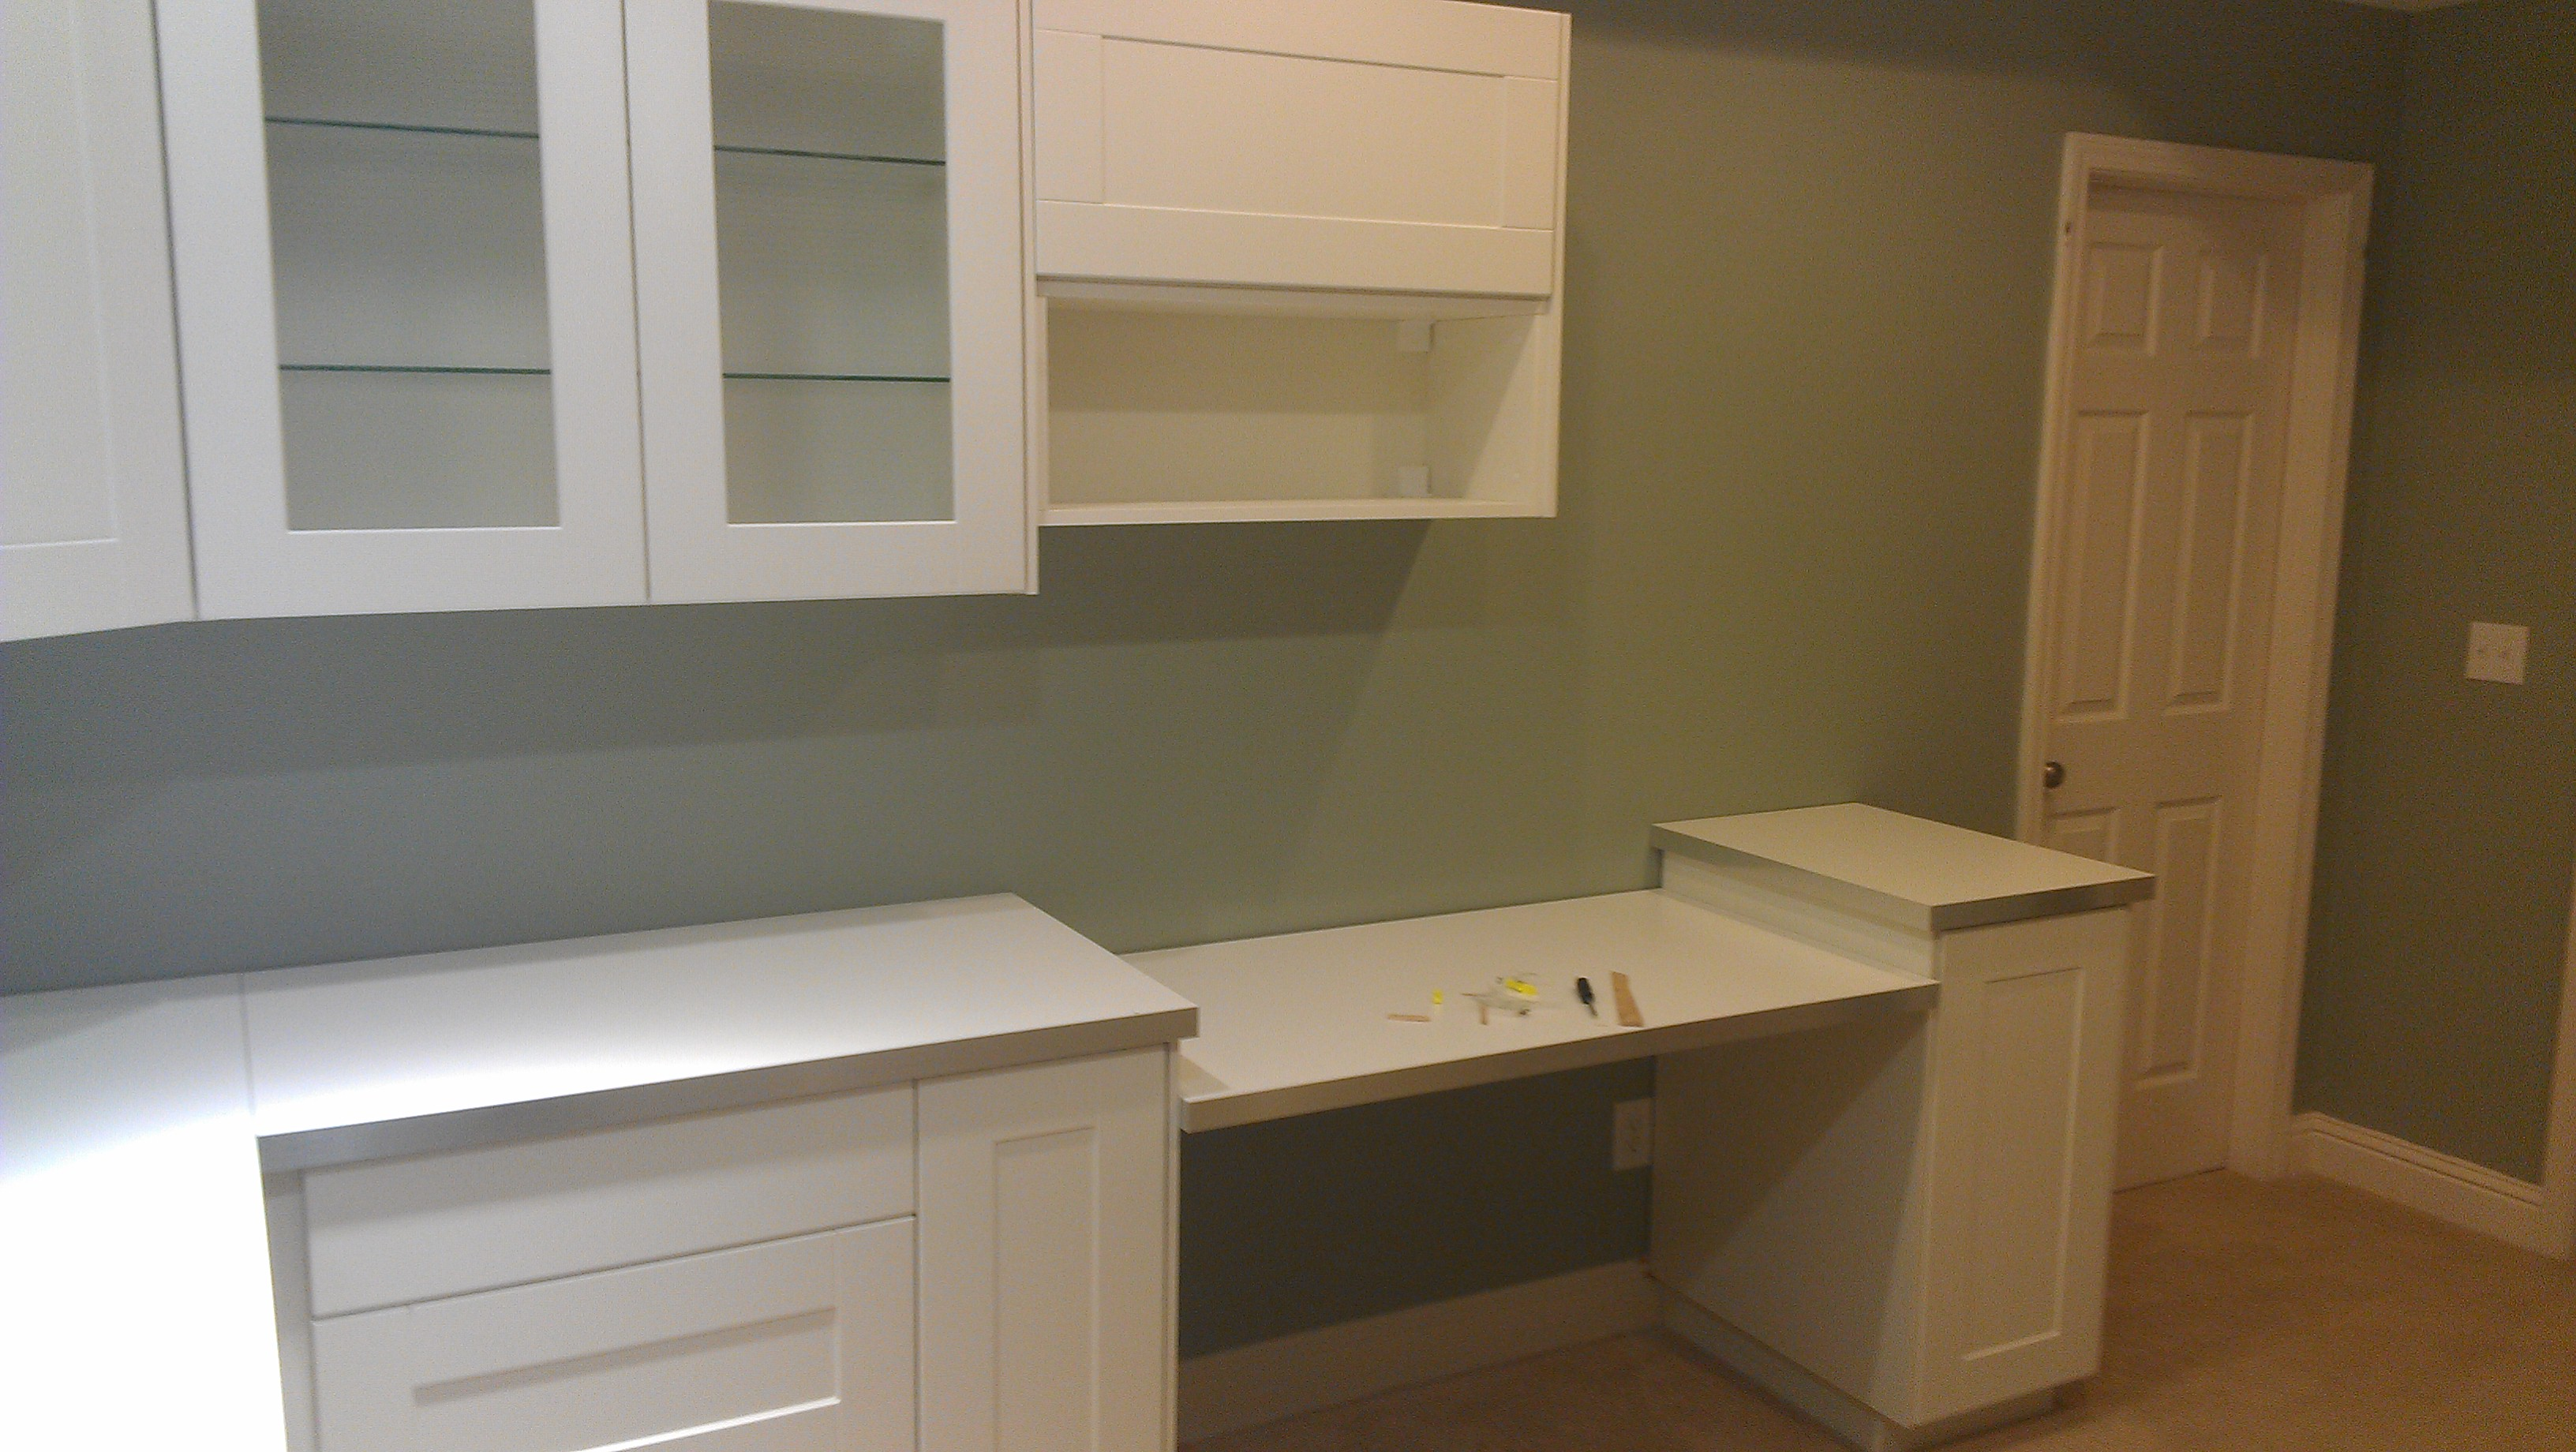 Ikea Wood Countertop White Laundry Room Floor Cabinets